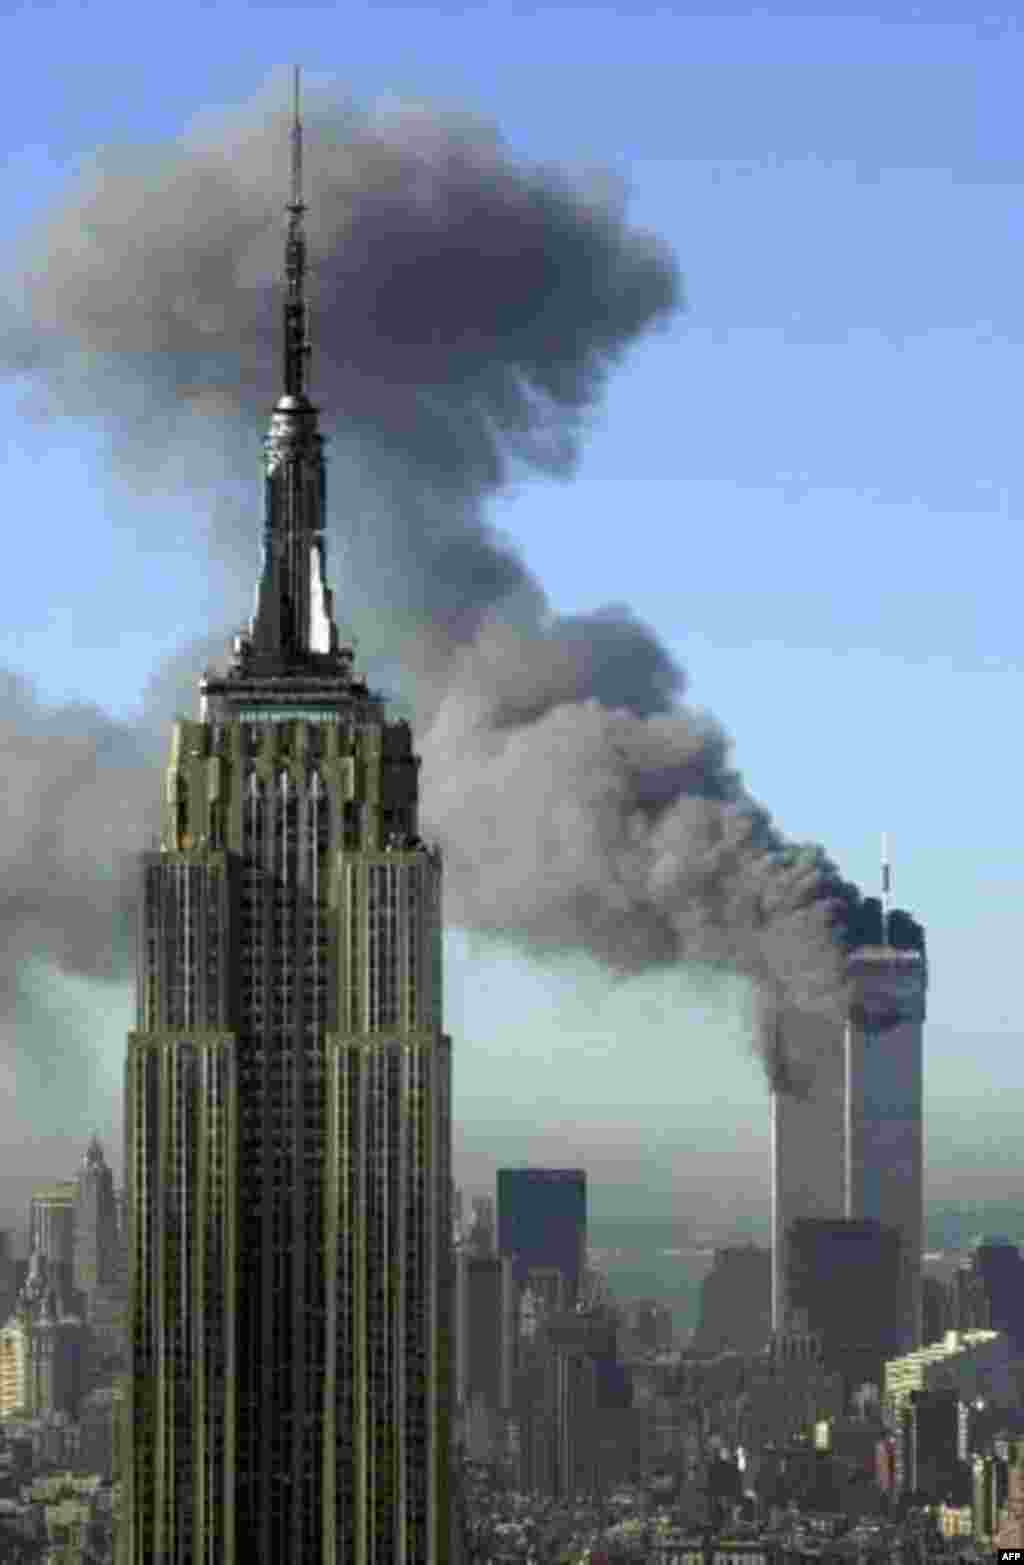 Plumes of smoke pour from the World Trade Center buildings in New York Tuesday, Sept. 11, 2001. Planes crashed into the upper floors of both World Trade Center towers minutes apart Tuesday in a horrific scene of explosions and fires that lead to the colla